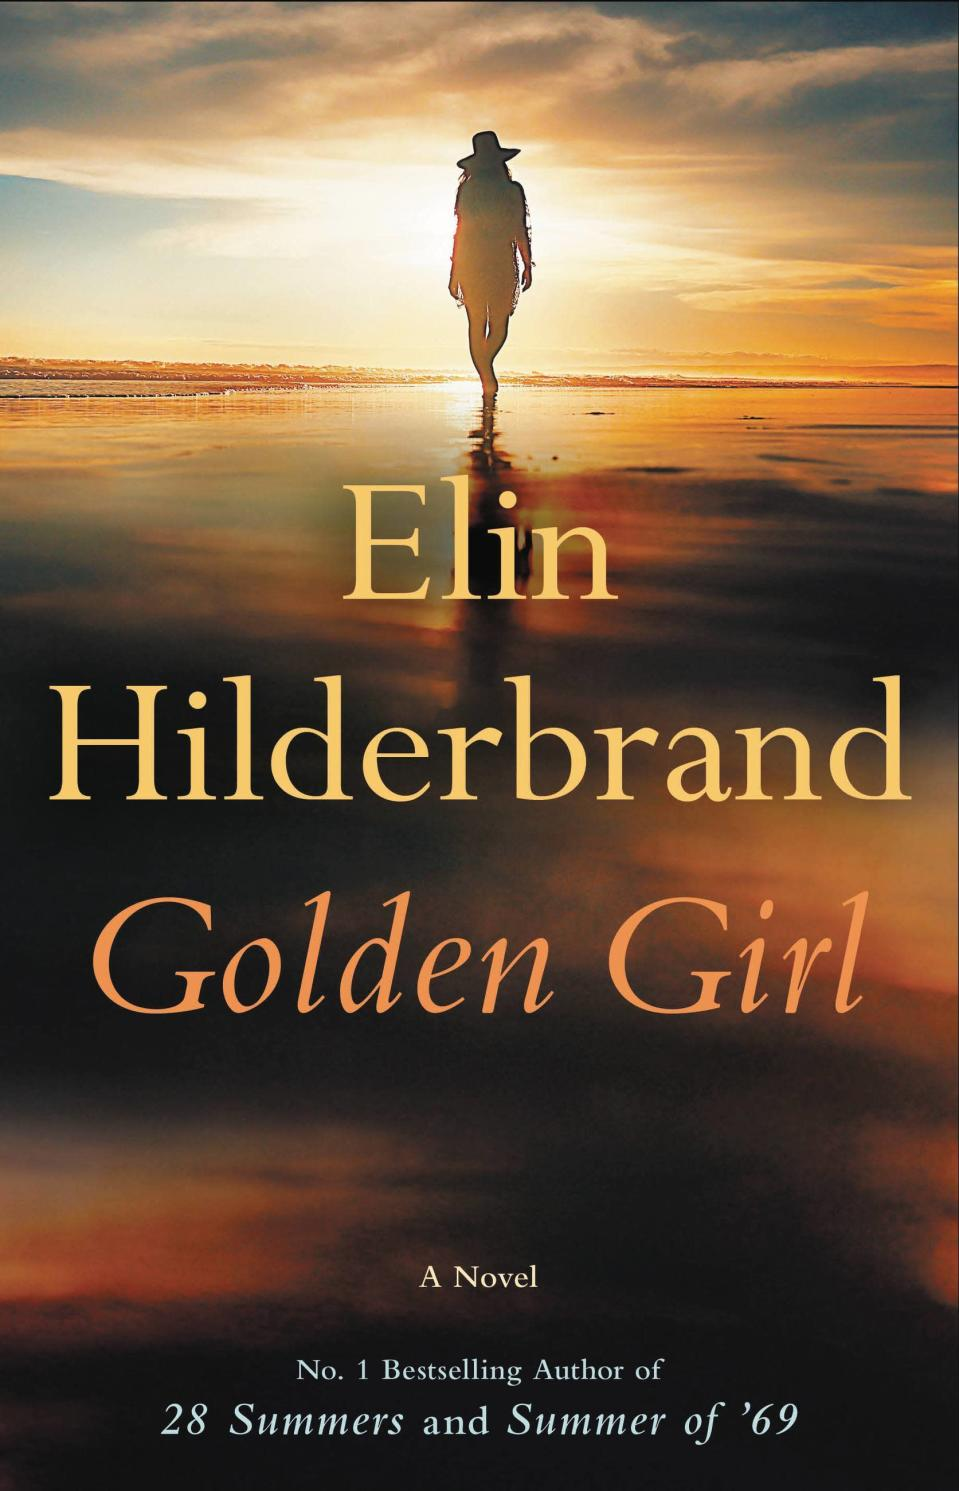 """This cover image released by Little, Brown & Company shows """"Golden Girl"""" the latest novel by Elin Hilderbrand. (Little, Brown & Company via AP)"""